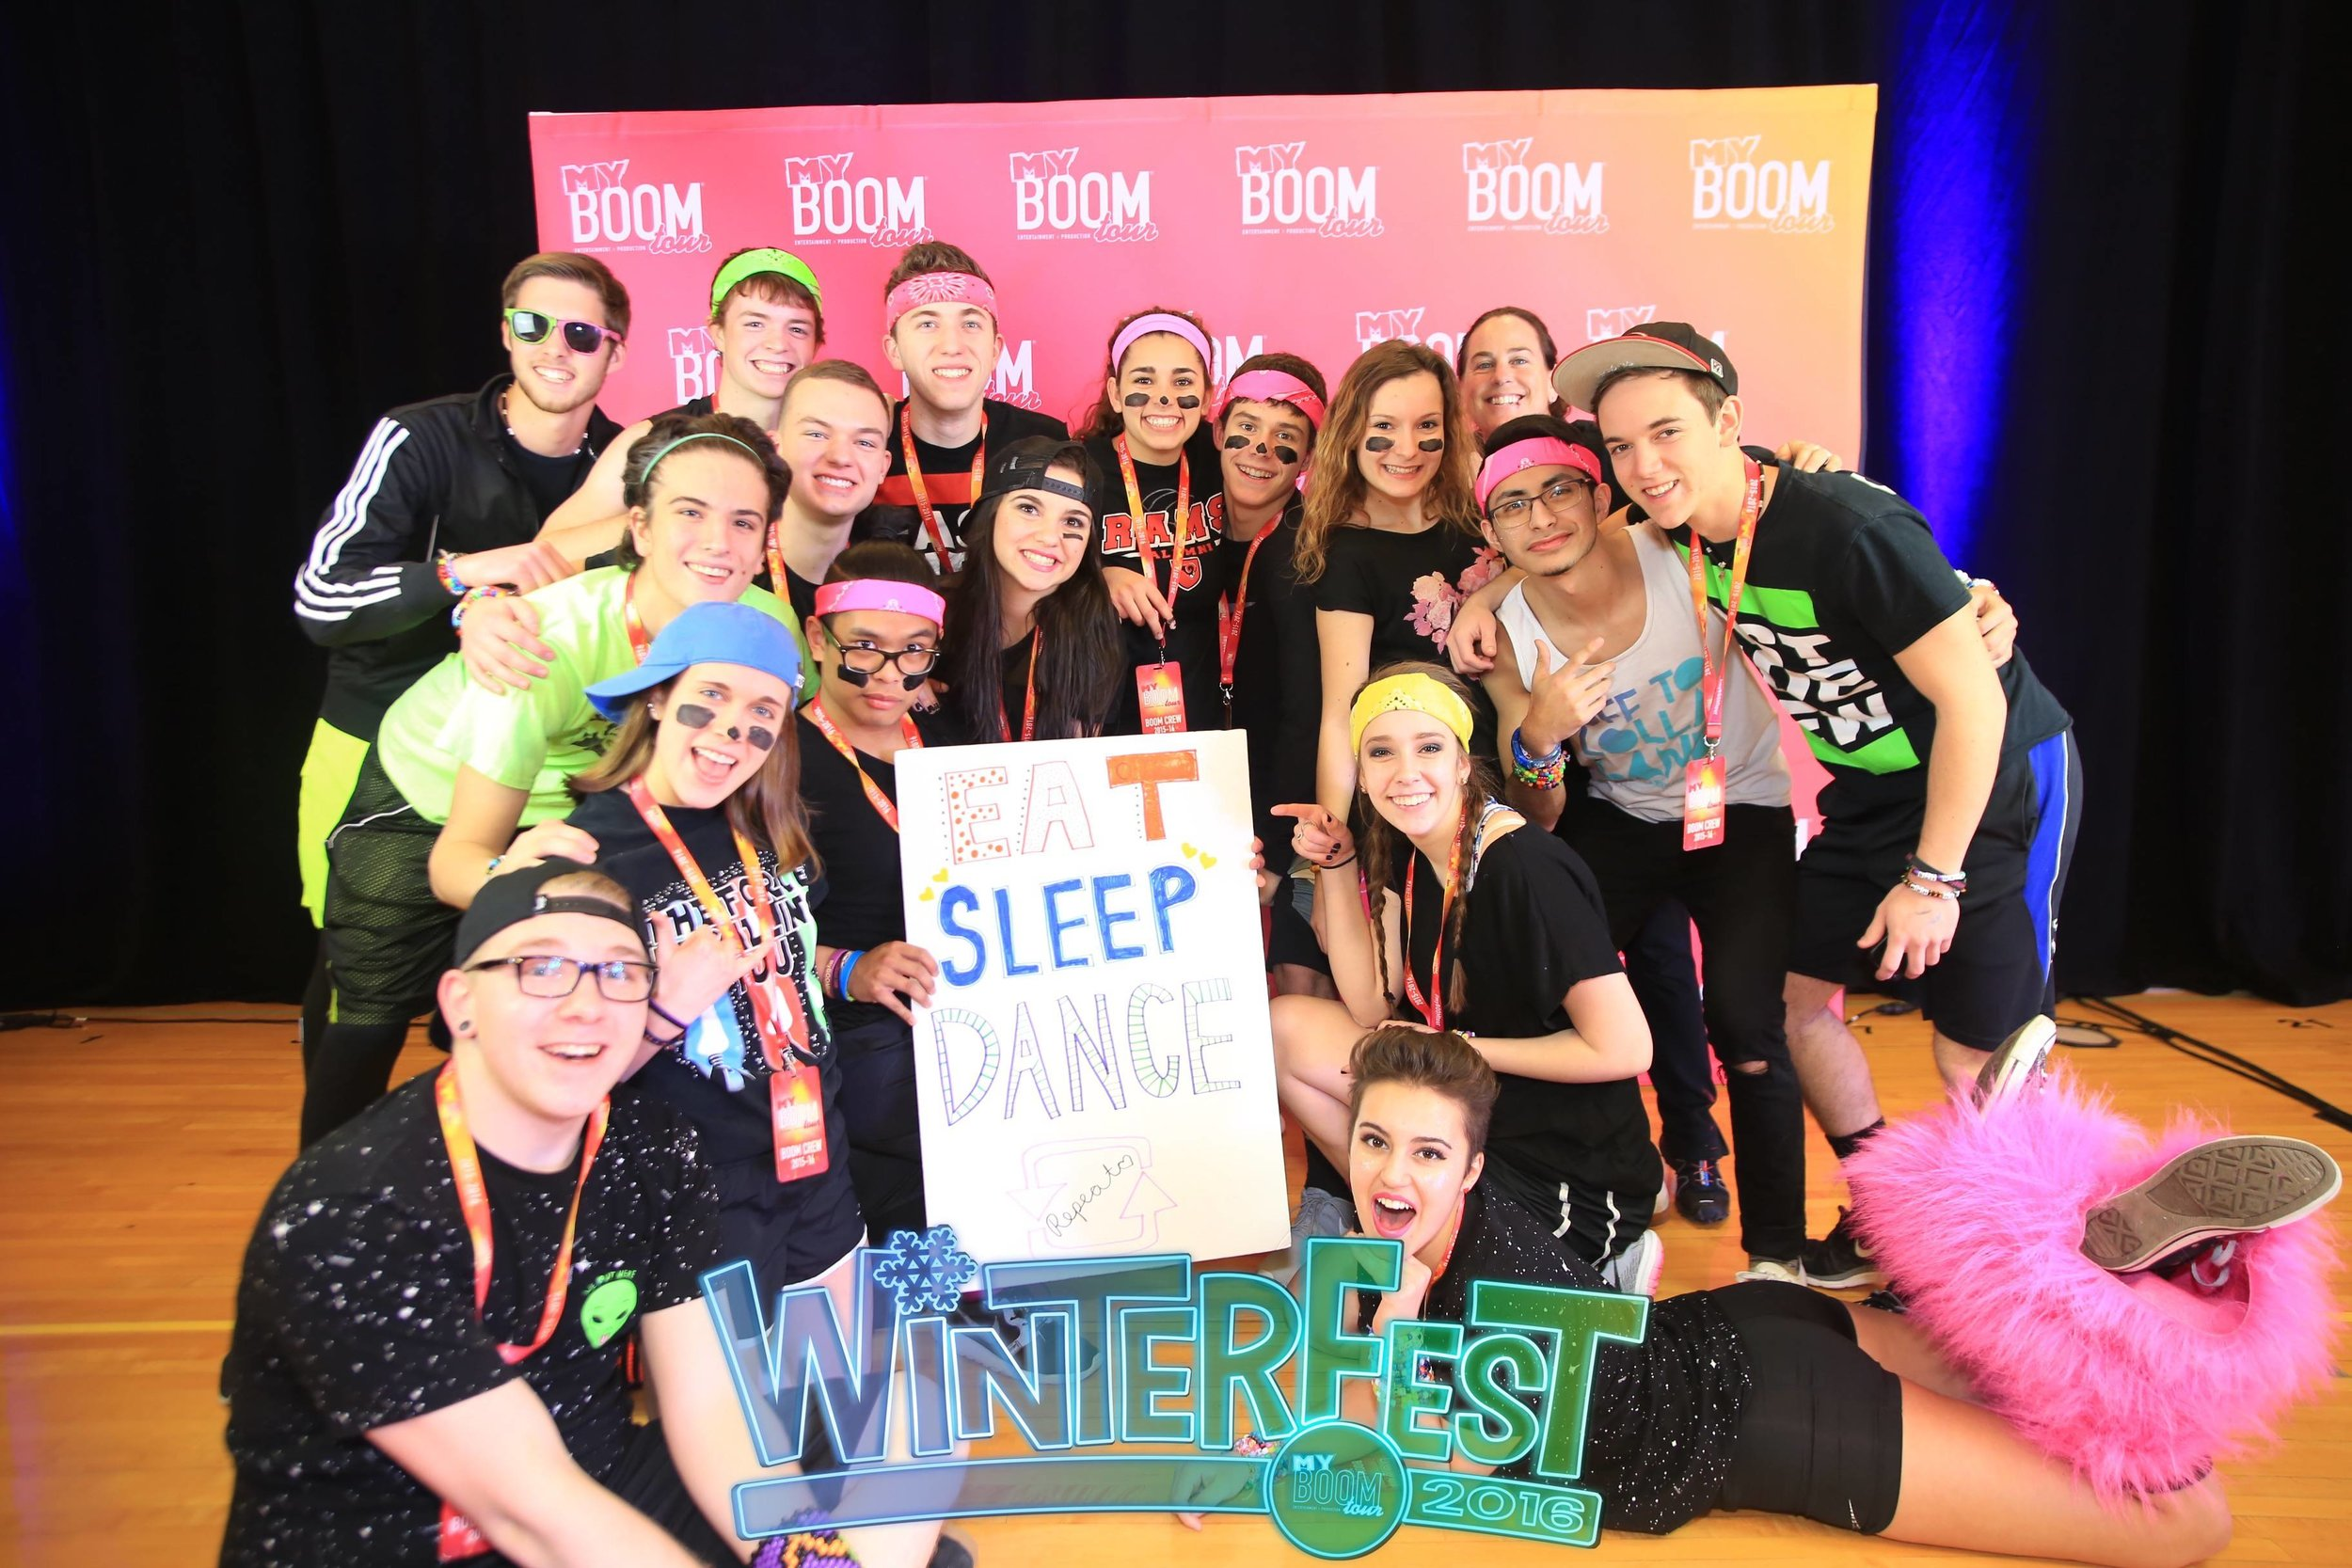 Glenbard East WinterFest16 Watermarked Good6.JPG